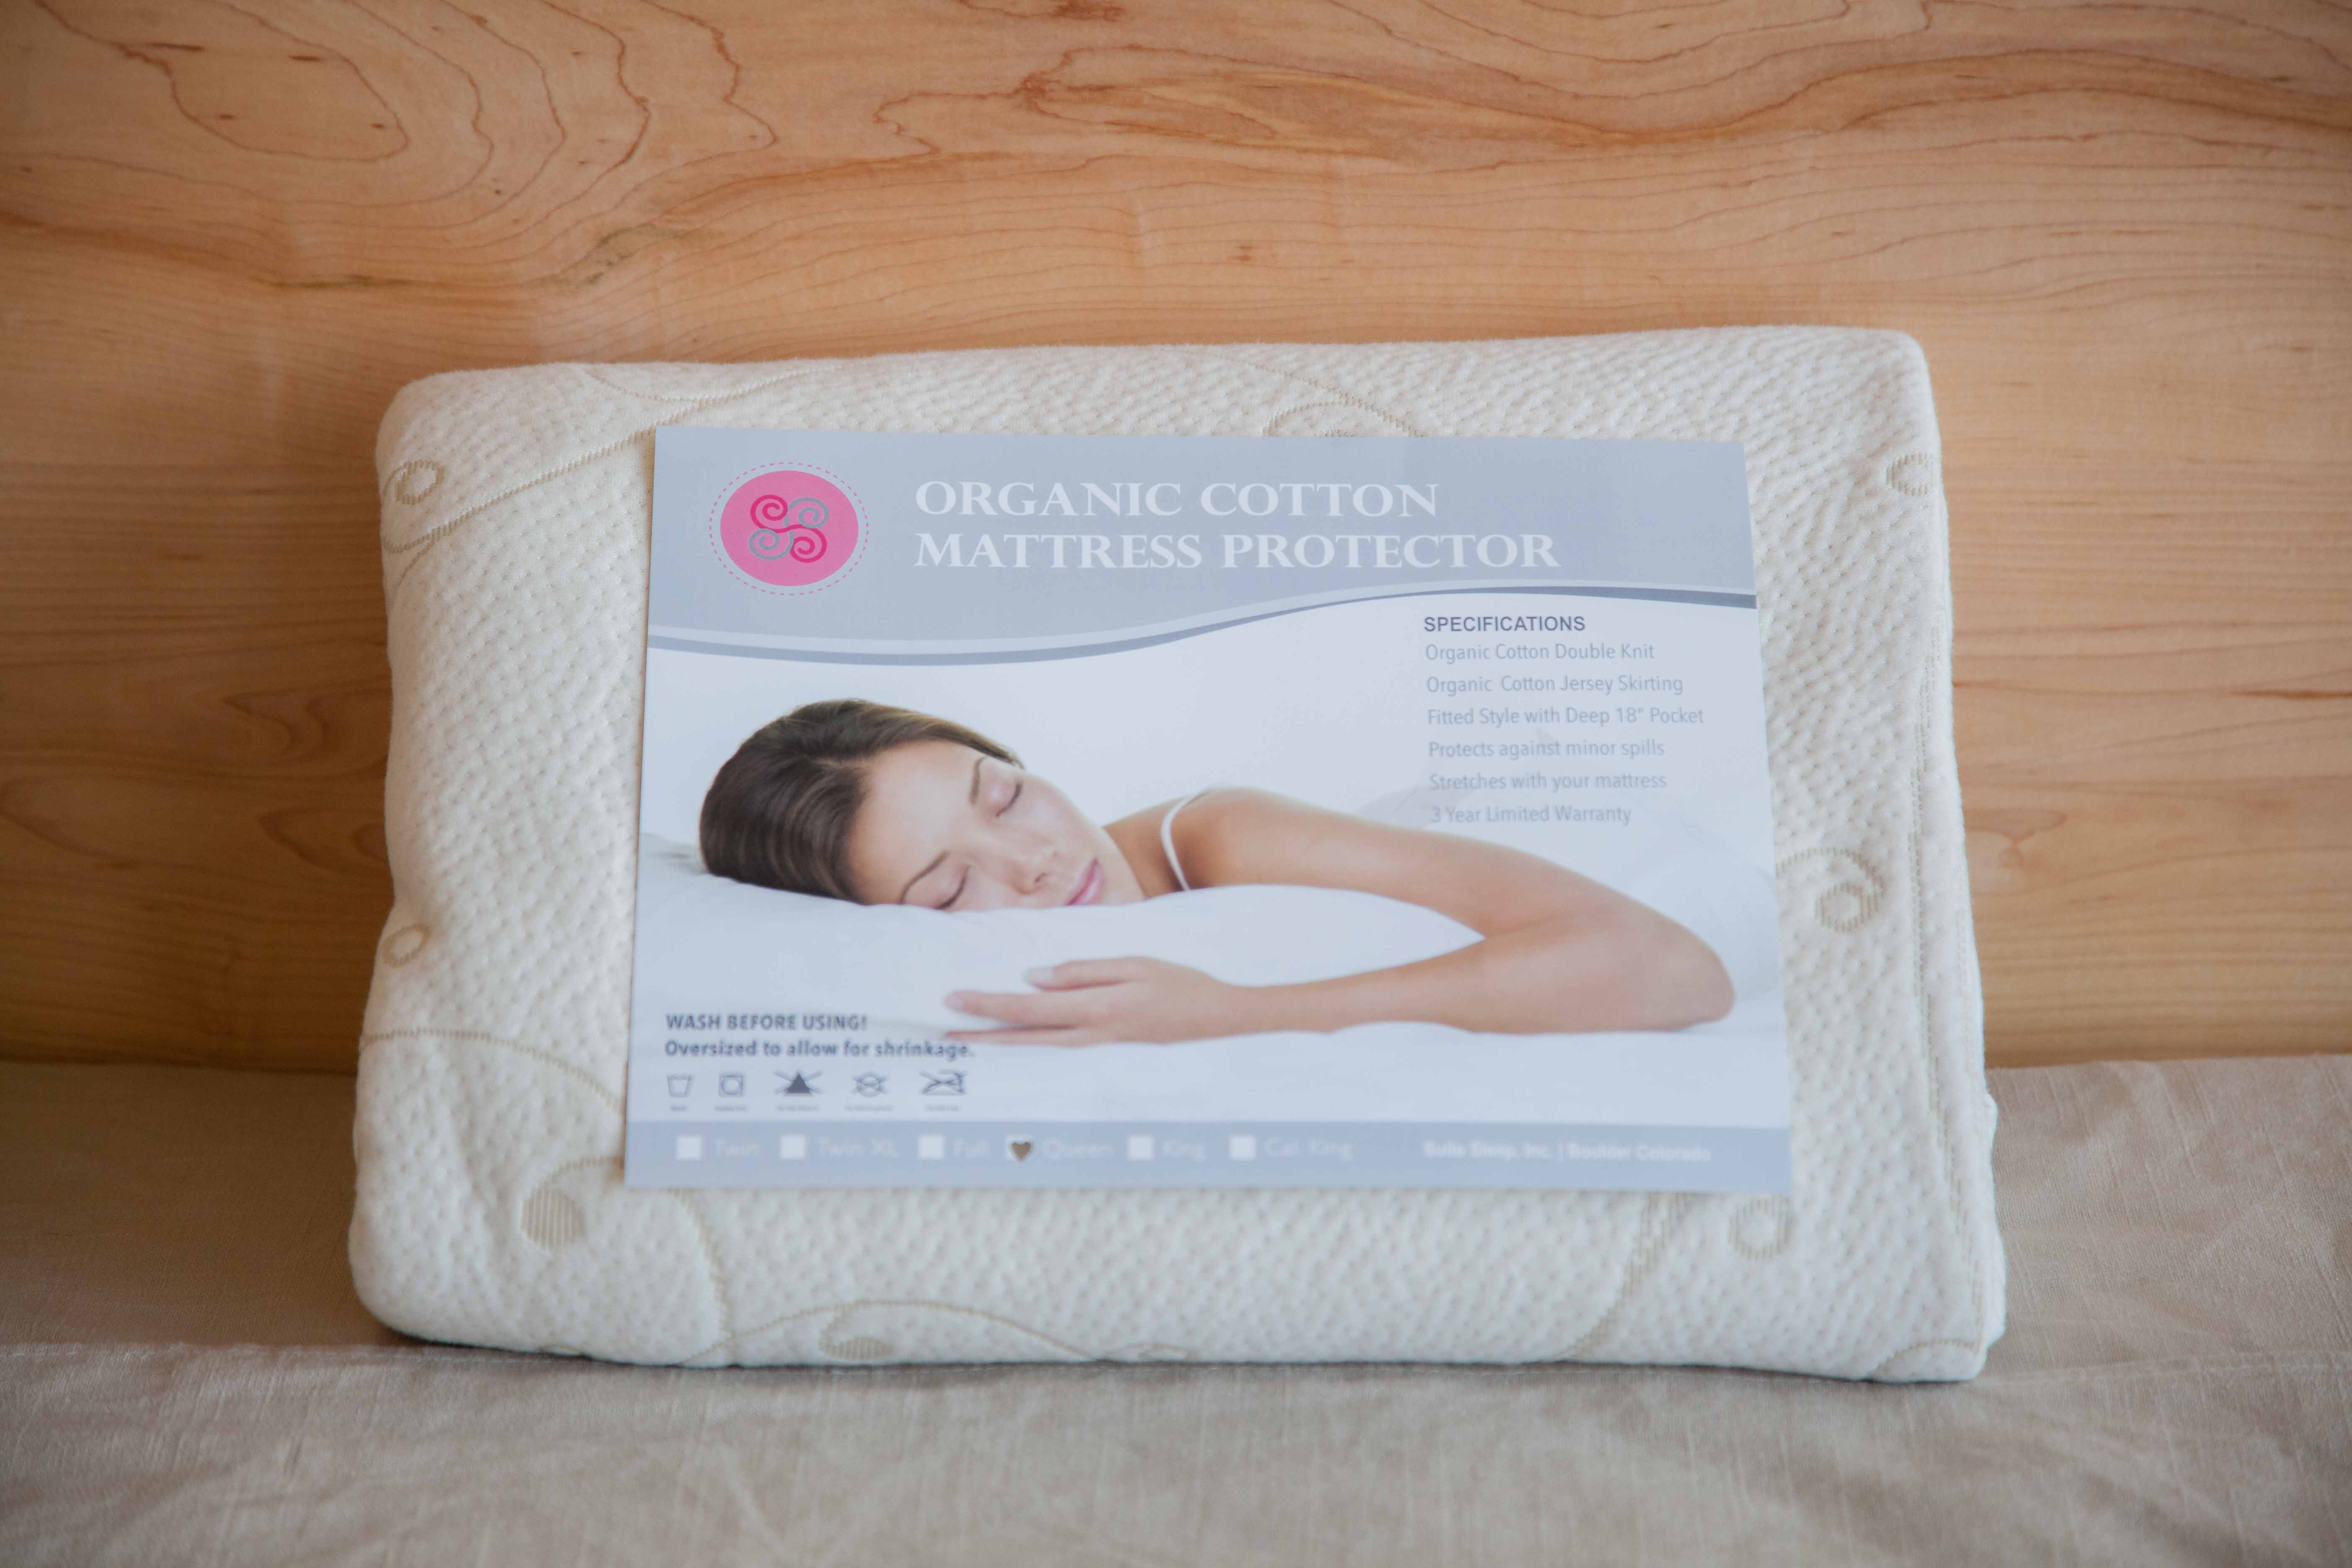 suite sleep organic cotton mattress pad free shipping sku - Organic Cotton Mattress